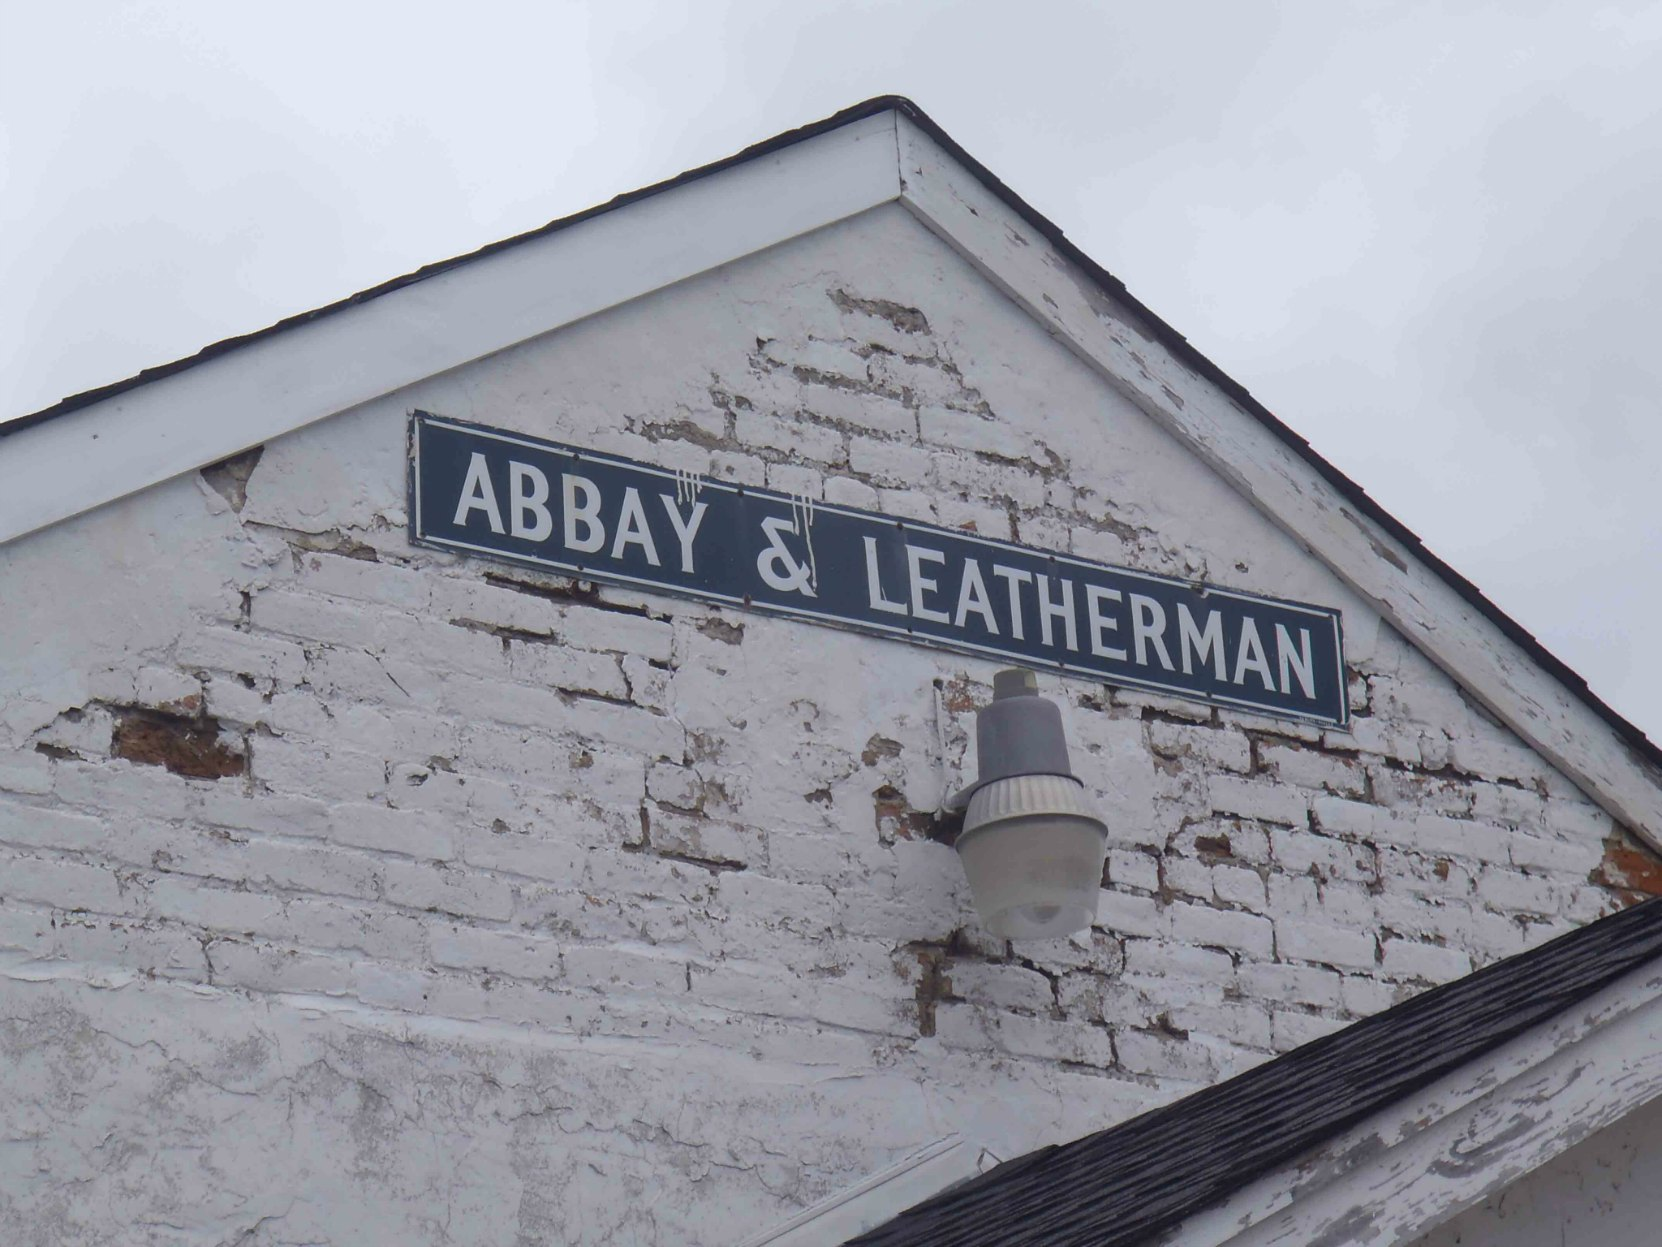 Abbay & Leatherman commissary sign, Tunica County, Mississippi